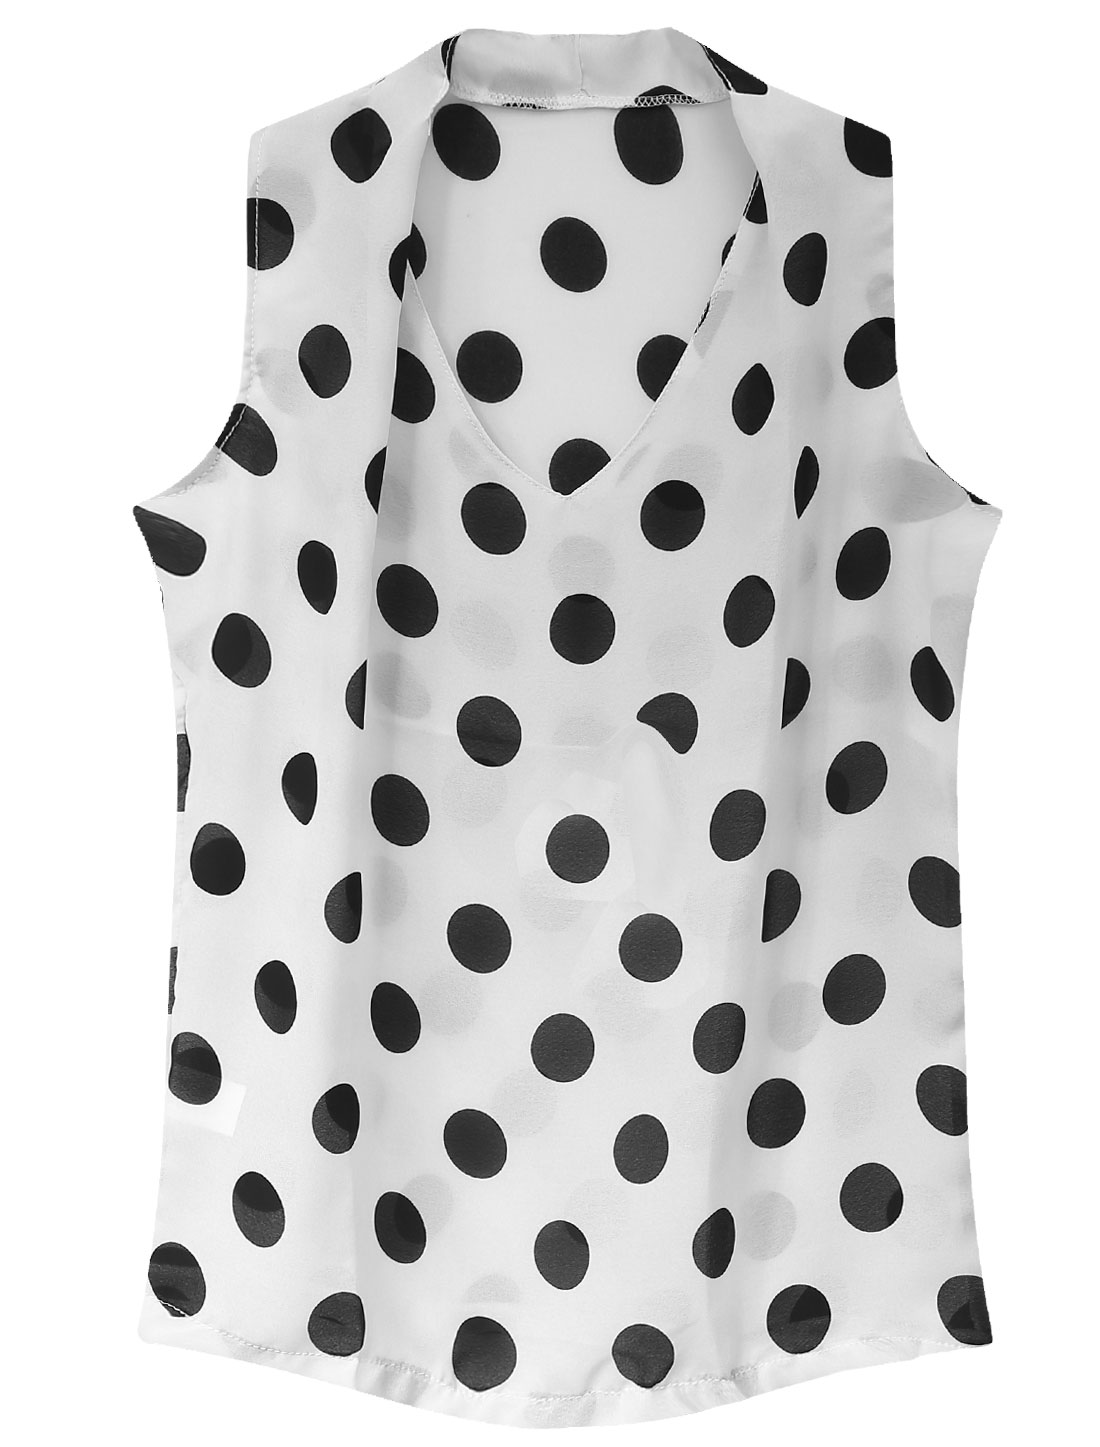 Lady Casual Sleeveless Dots Prints Semi Sheer Chiffon Blouse White S